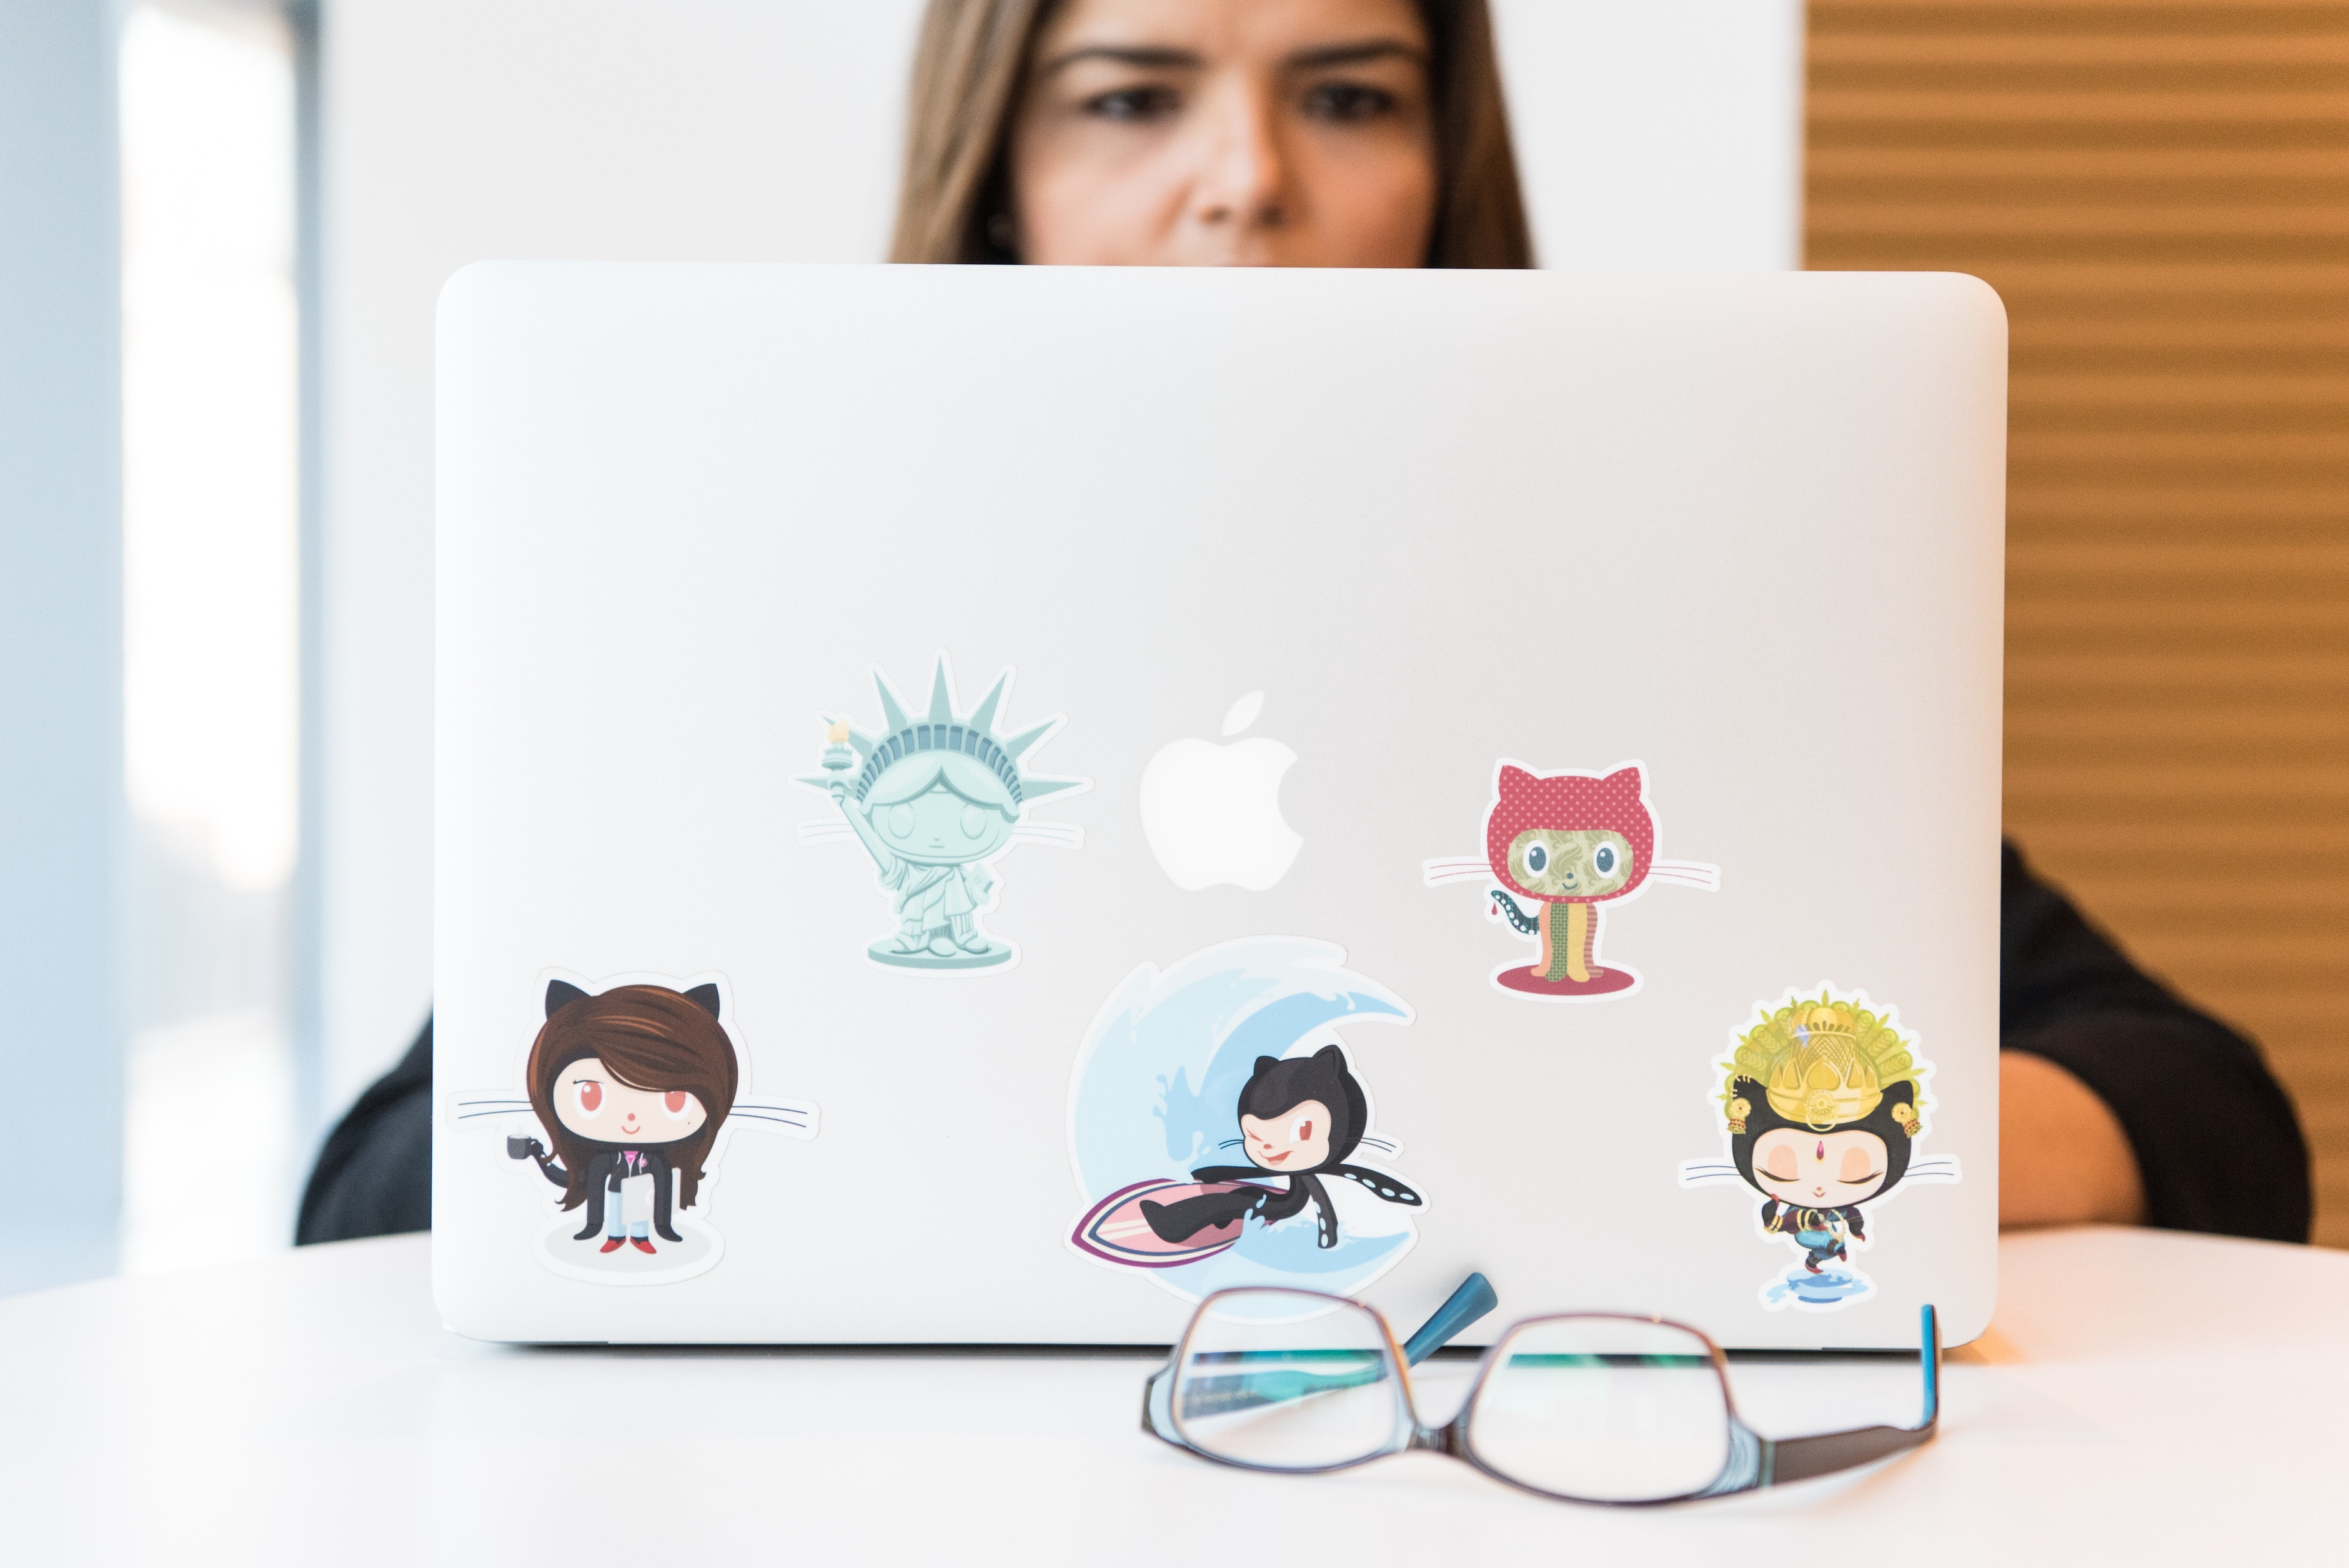 GitHub Integration Tools to Add To Your Team